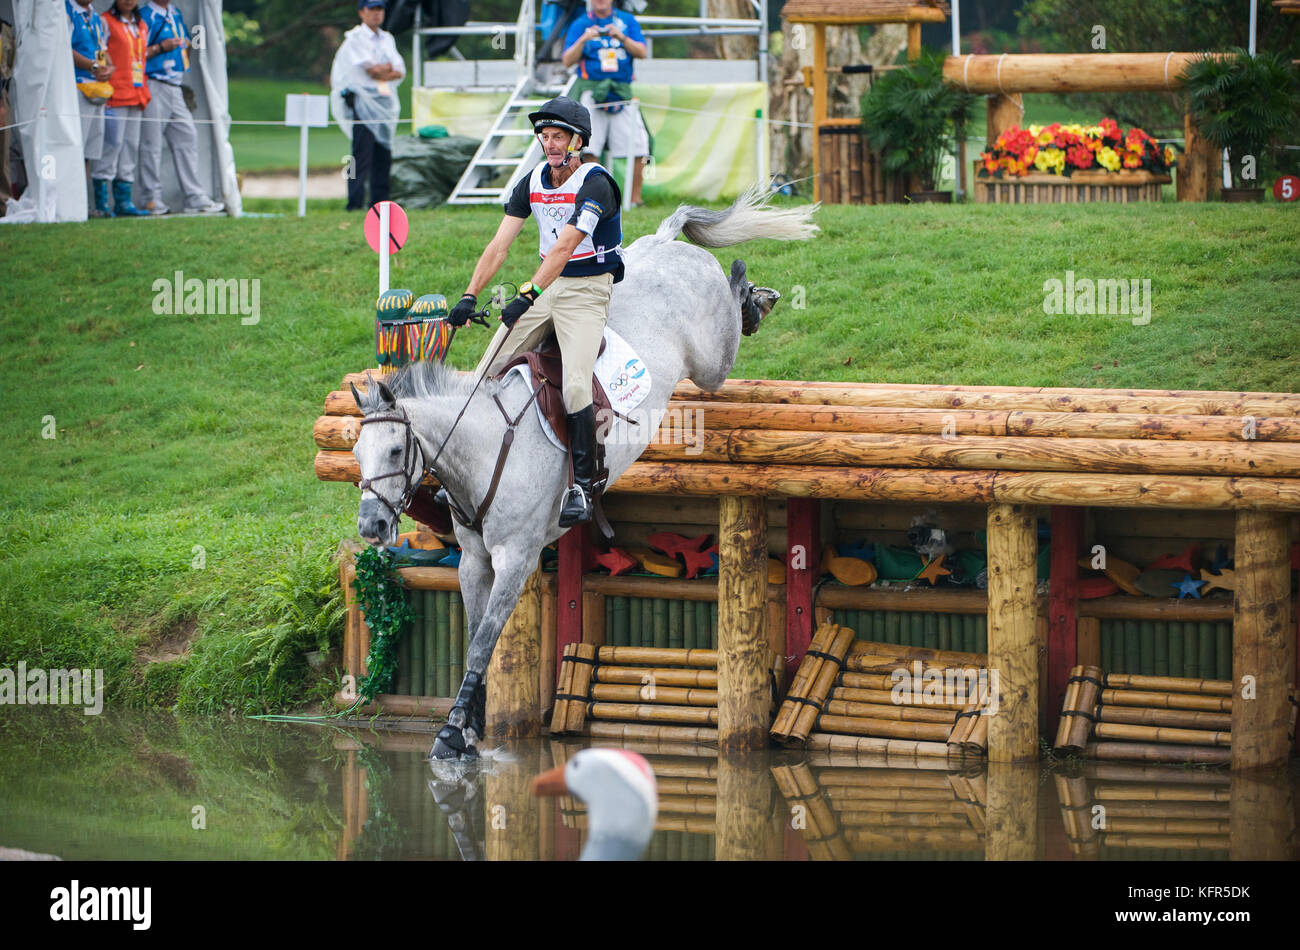 Olympic Games 2008, Hong Kong (Beijing Games) August 2008, Mark Todd (NZL) riding Gandalf, eventing cross country - Stock Image